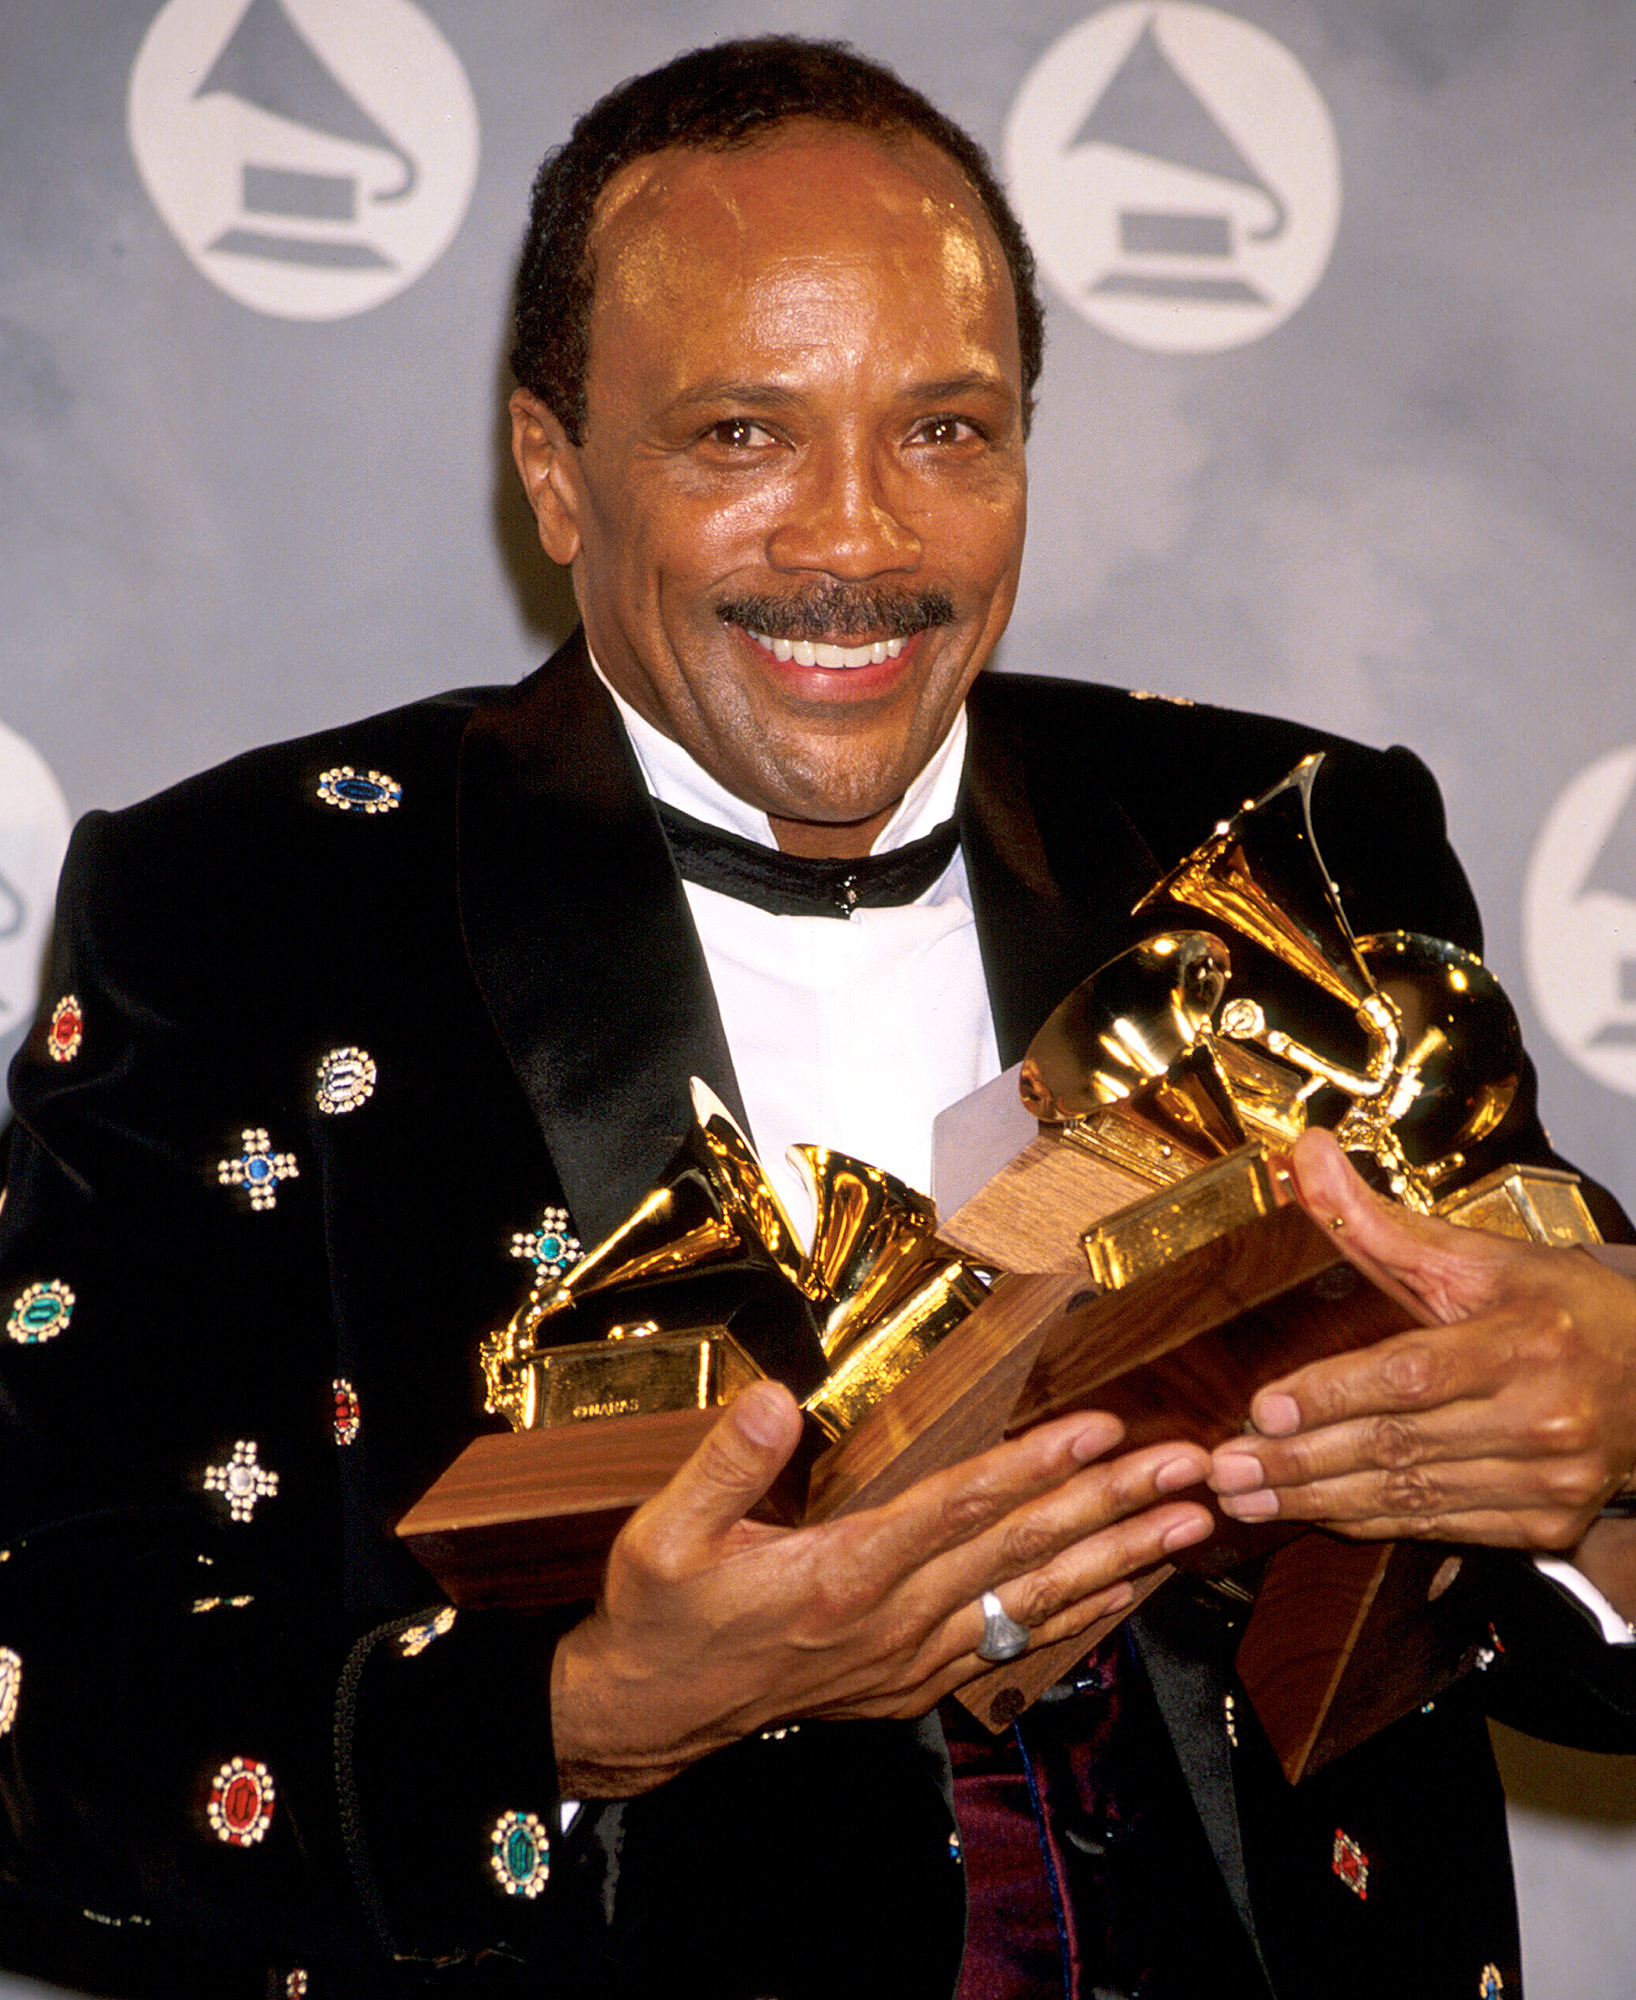 Composer-Quincy-Jones-grammy-awards - Not only has legendary R&B and soul producer Quincy Jones won 27 Grammys but he also holds the record for most Grammy nominations with 80 nods.